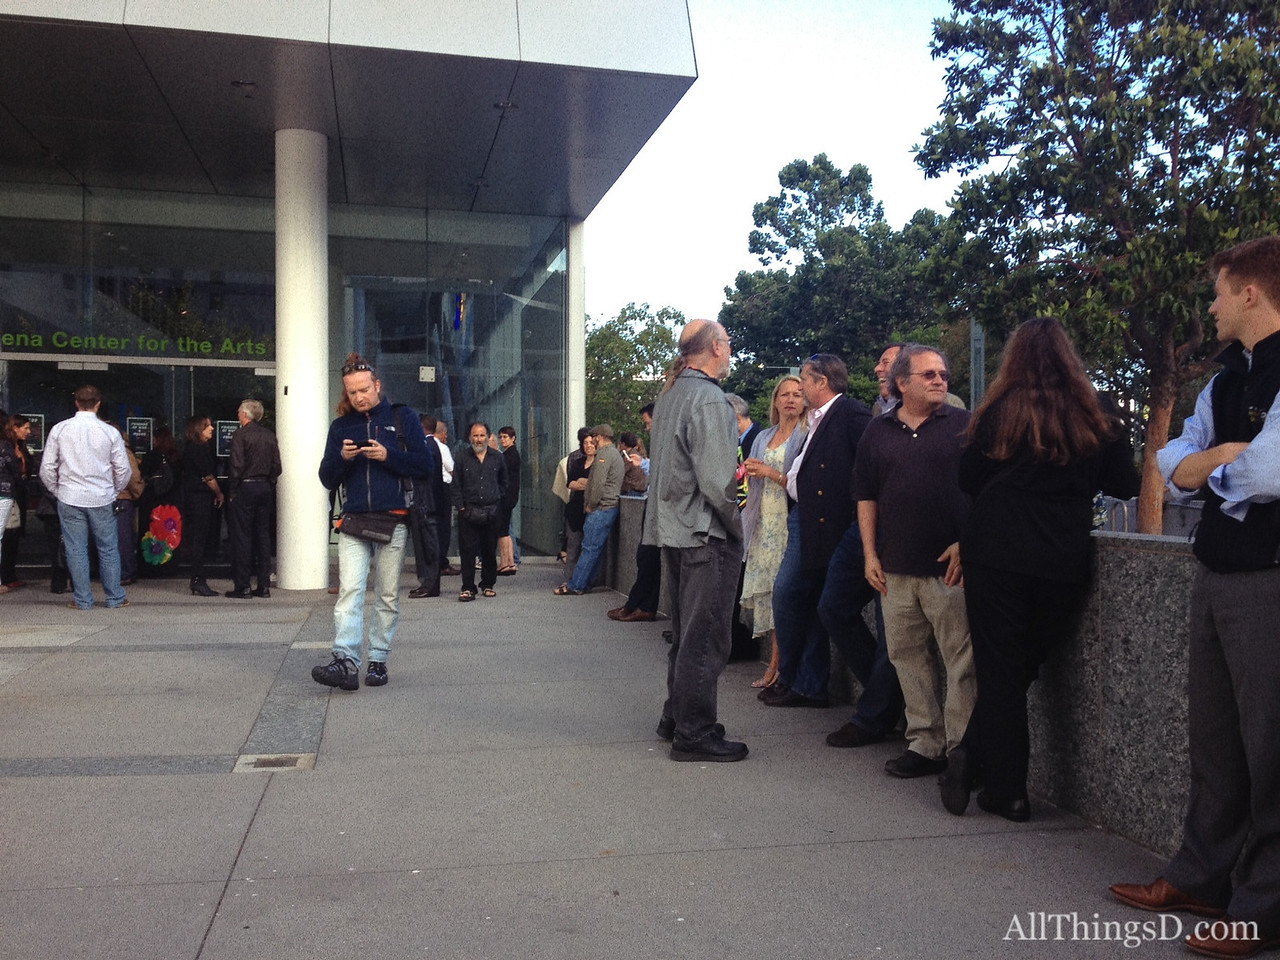 Guests line up outside the Yerba Buena Center for the Arts in San Francisco for Steve Wozniak's surprise birthday party.